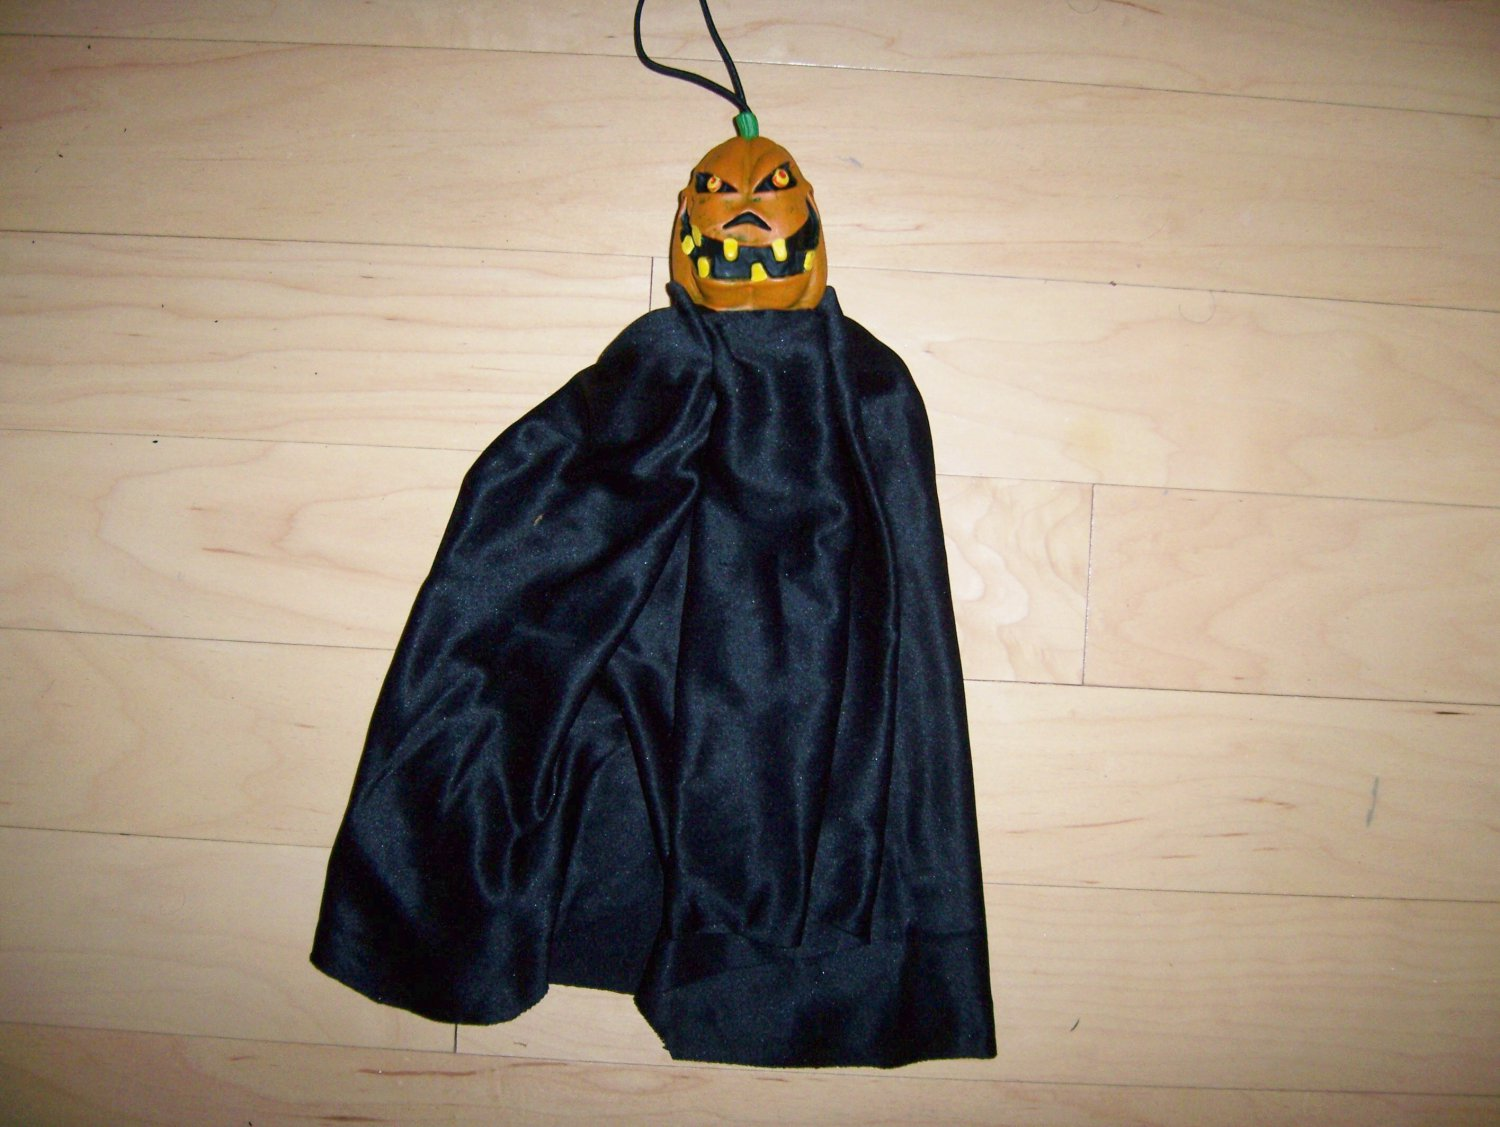 Angry Hanging Pumpkin With Black Flowing Skirt BNK1543